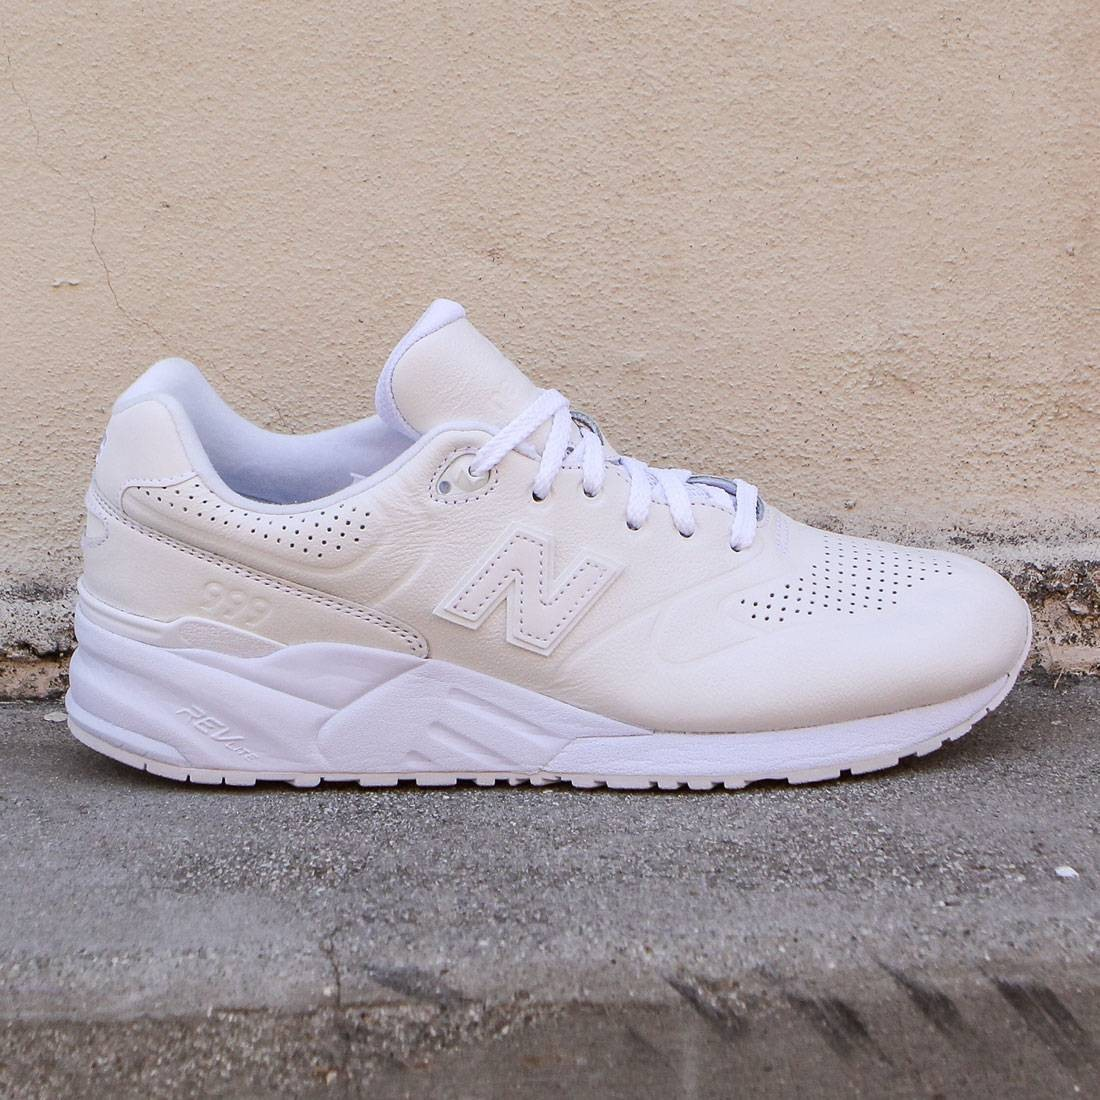 outlet store b7b22 e4522 New Balance Men 999 Deconstructed 90s Running Leather MRL999AH (white)